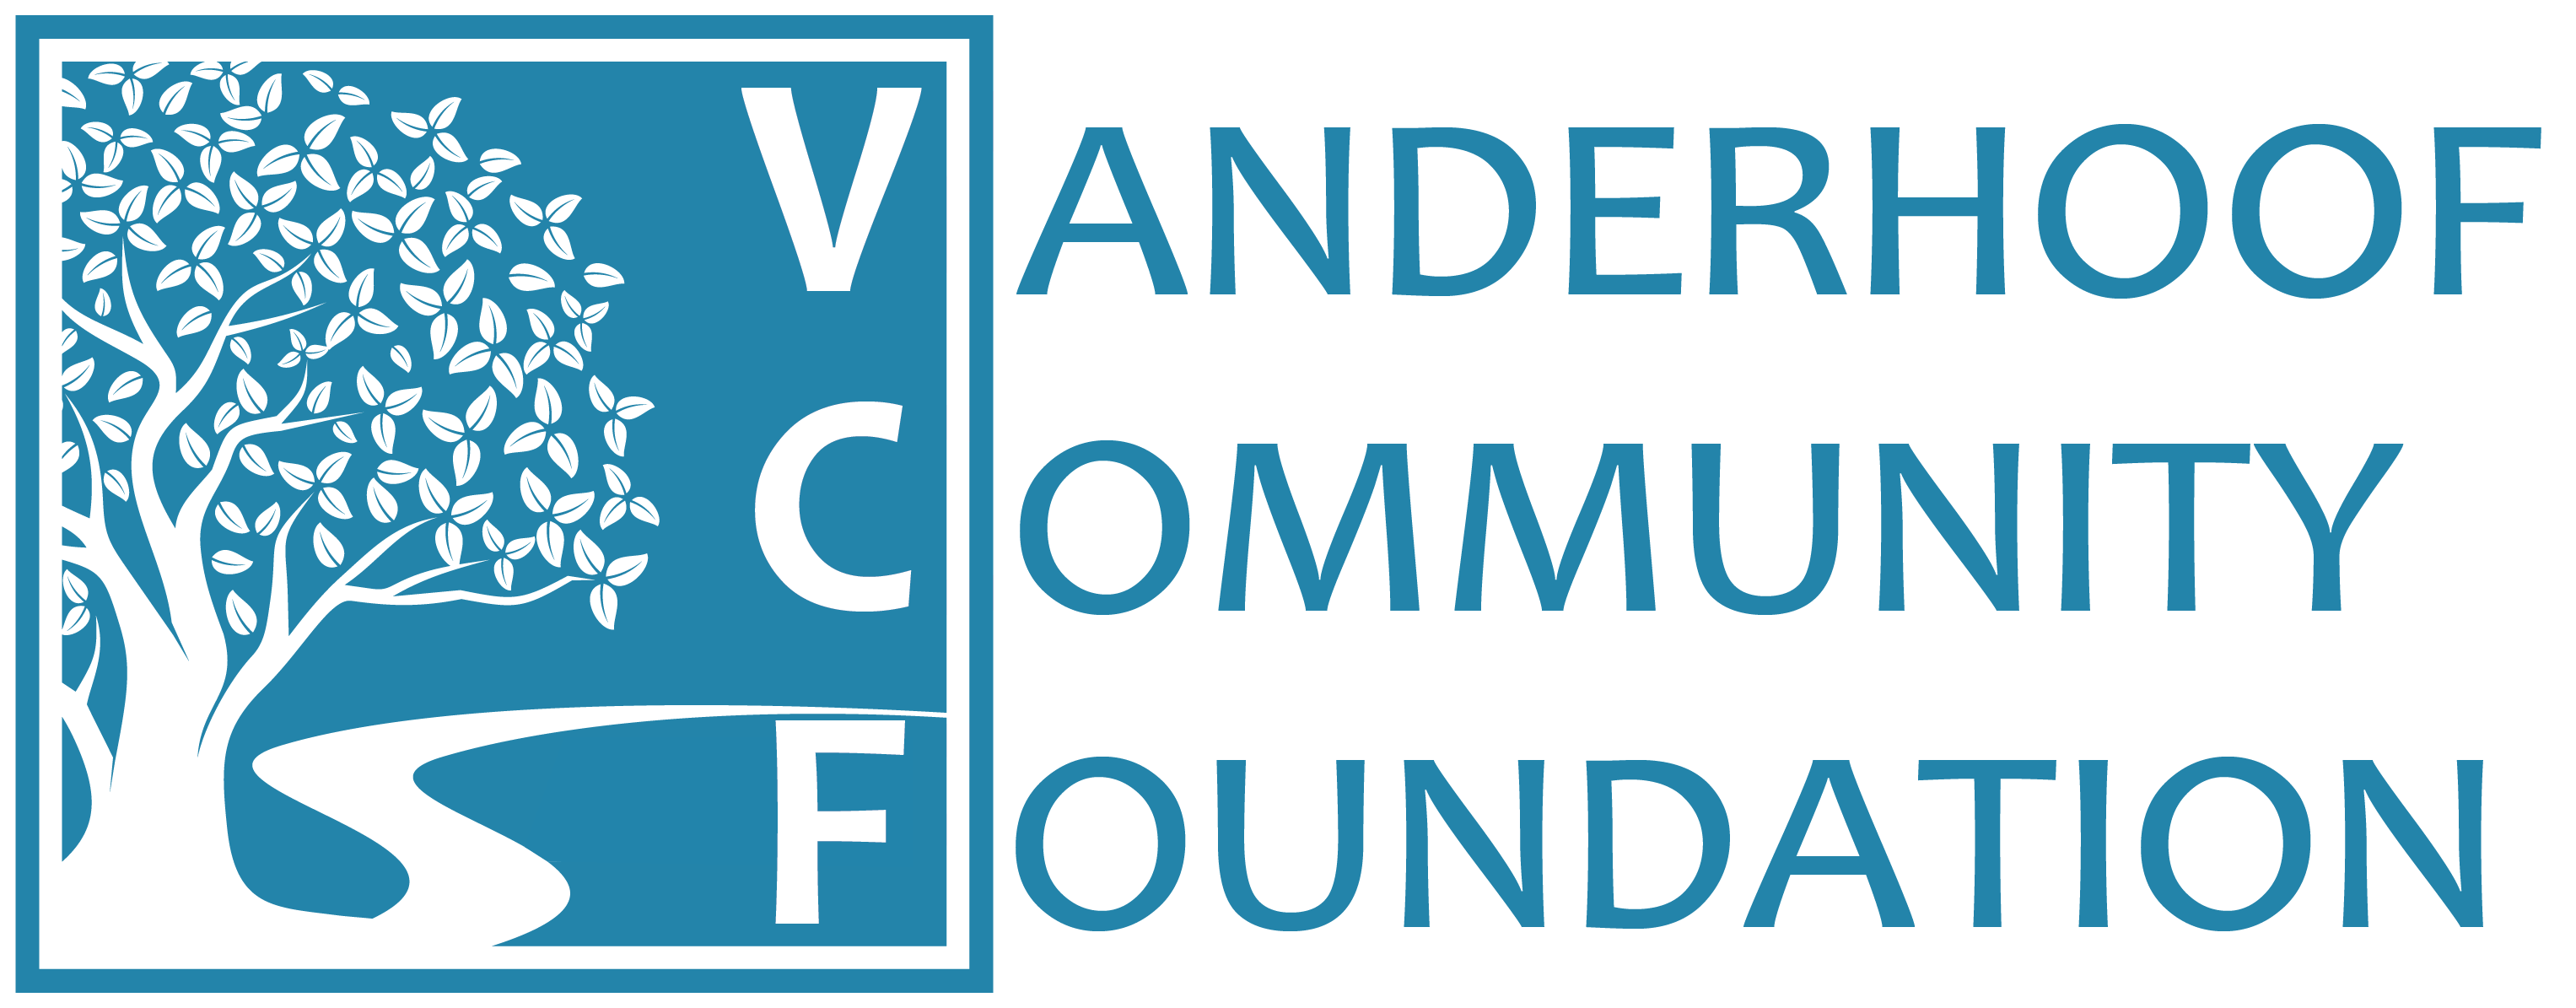 Vanderhoof Community Foundation